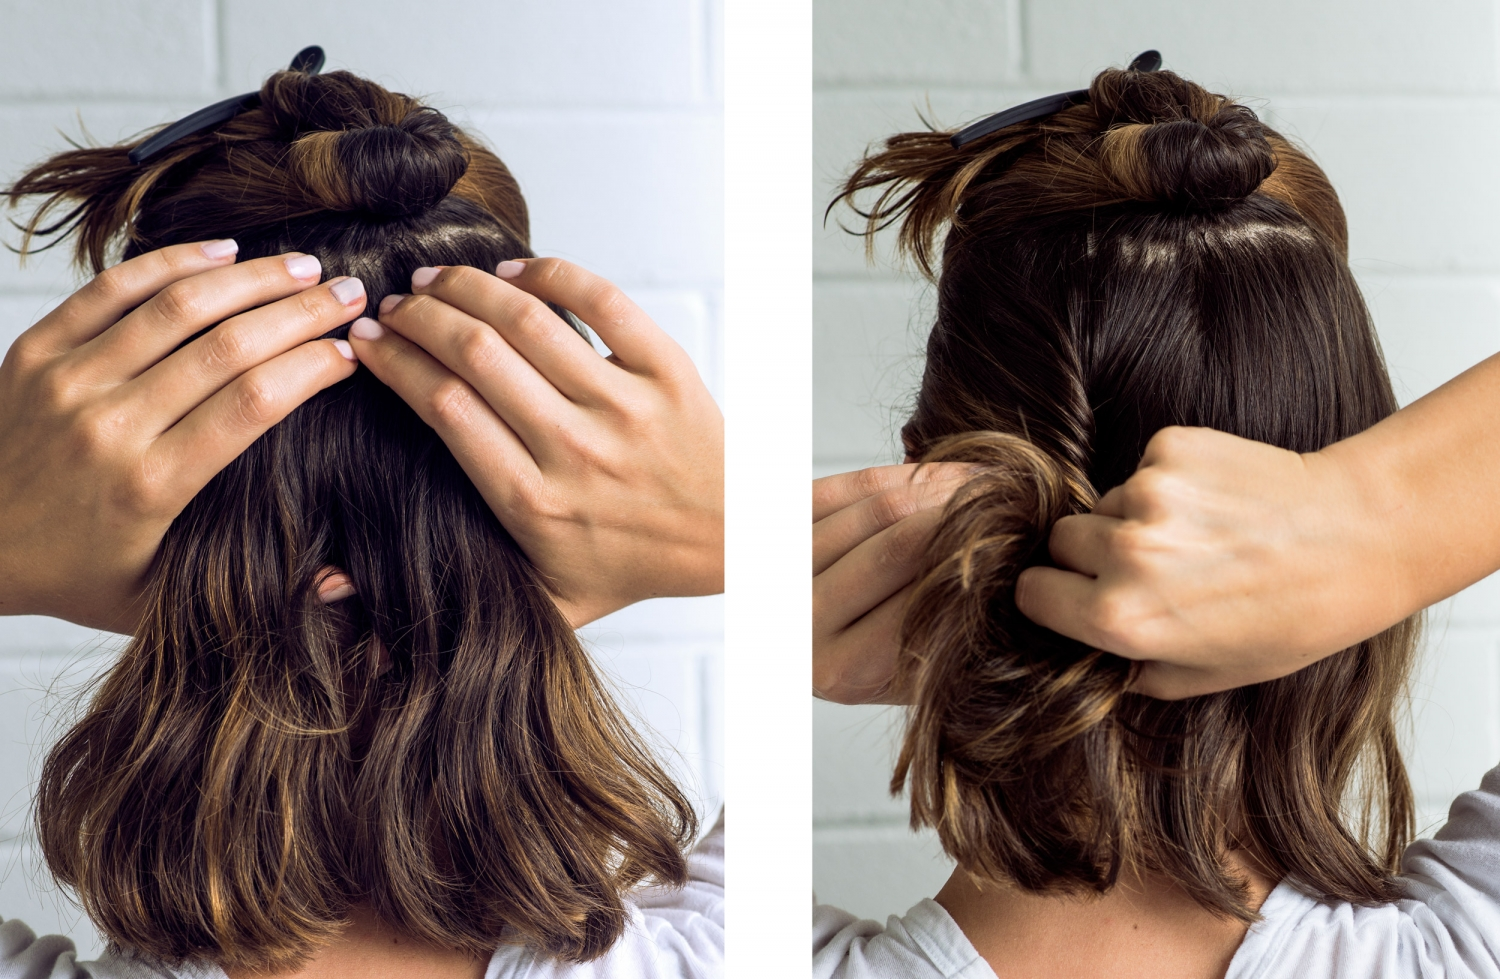 toni-and-guy-hair-how-to---step-4